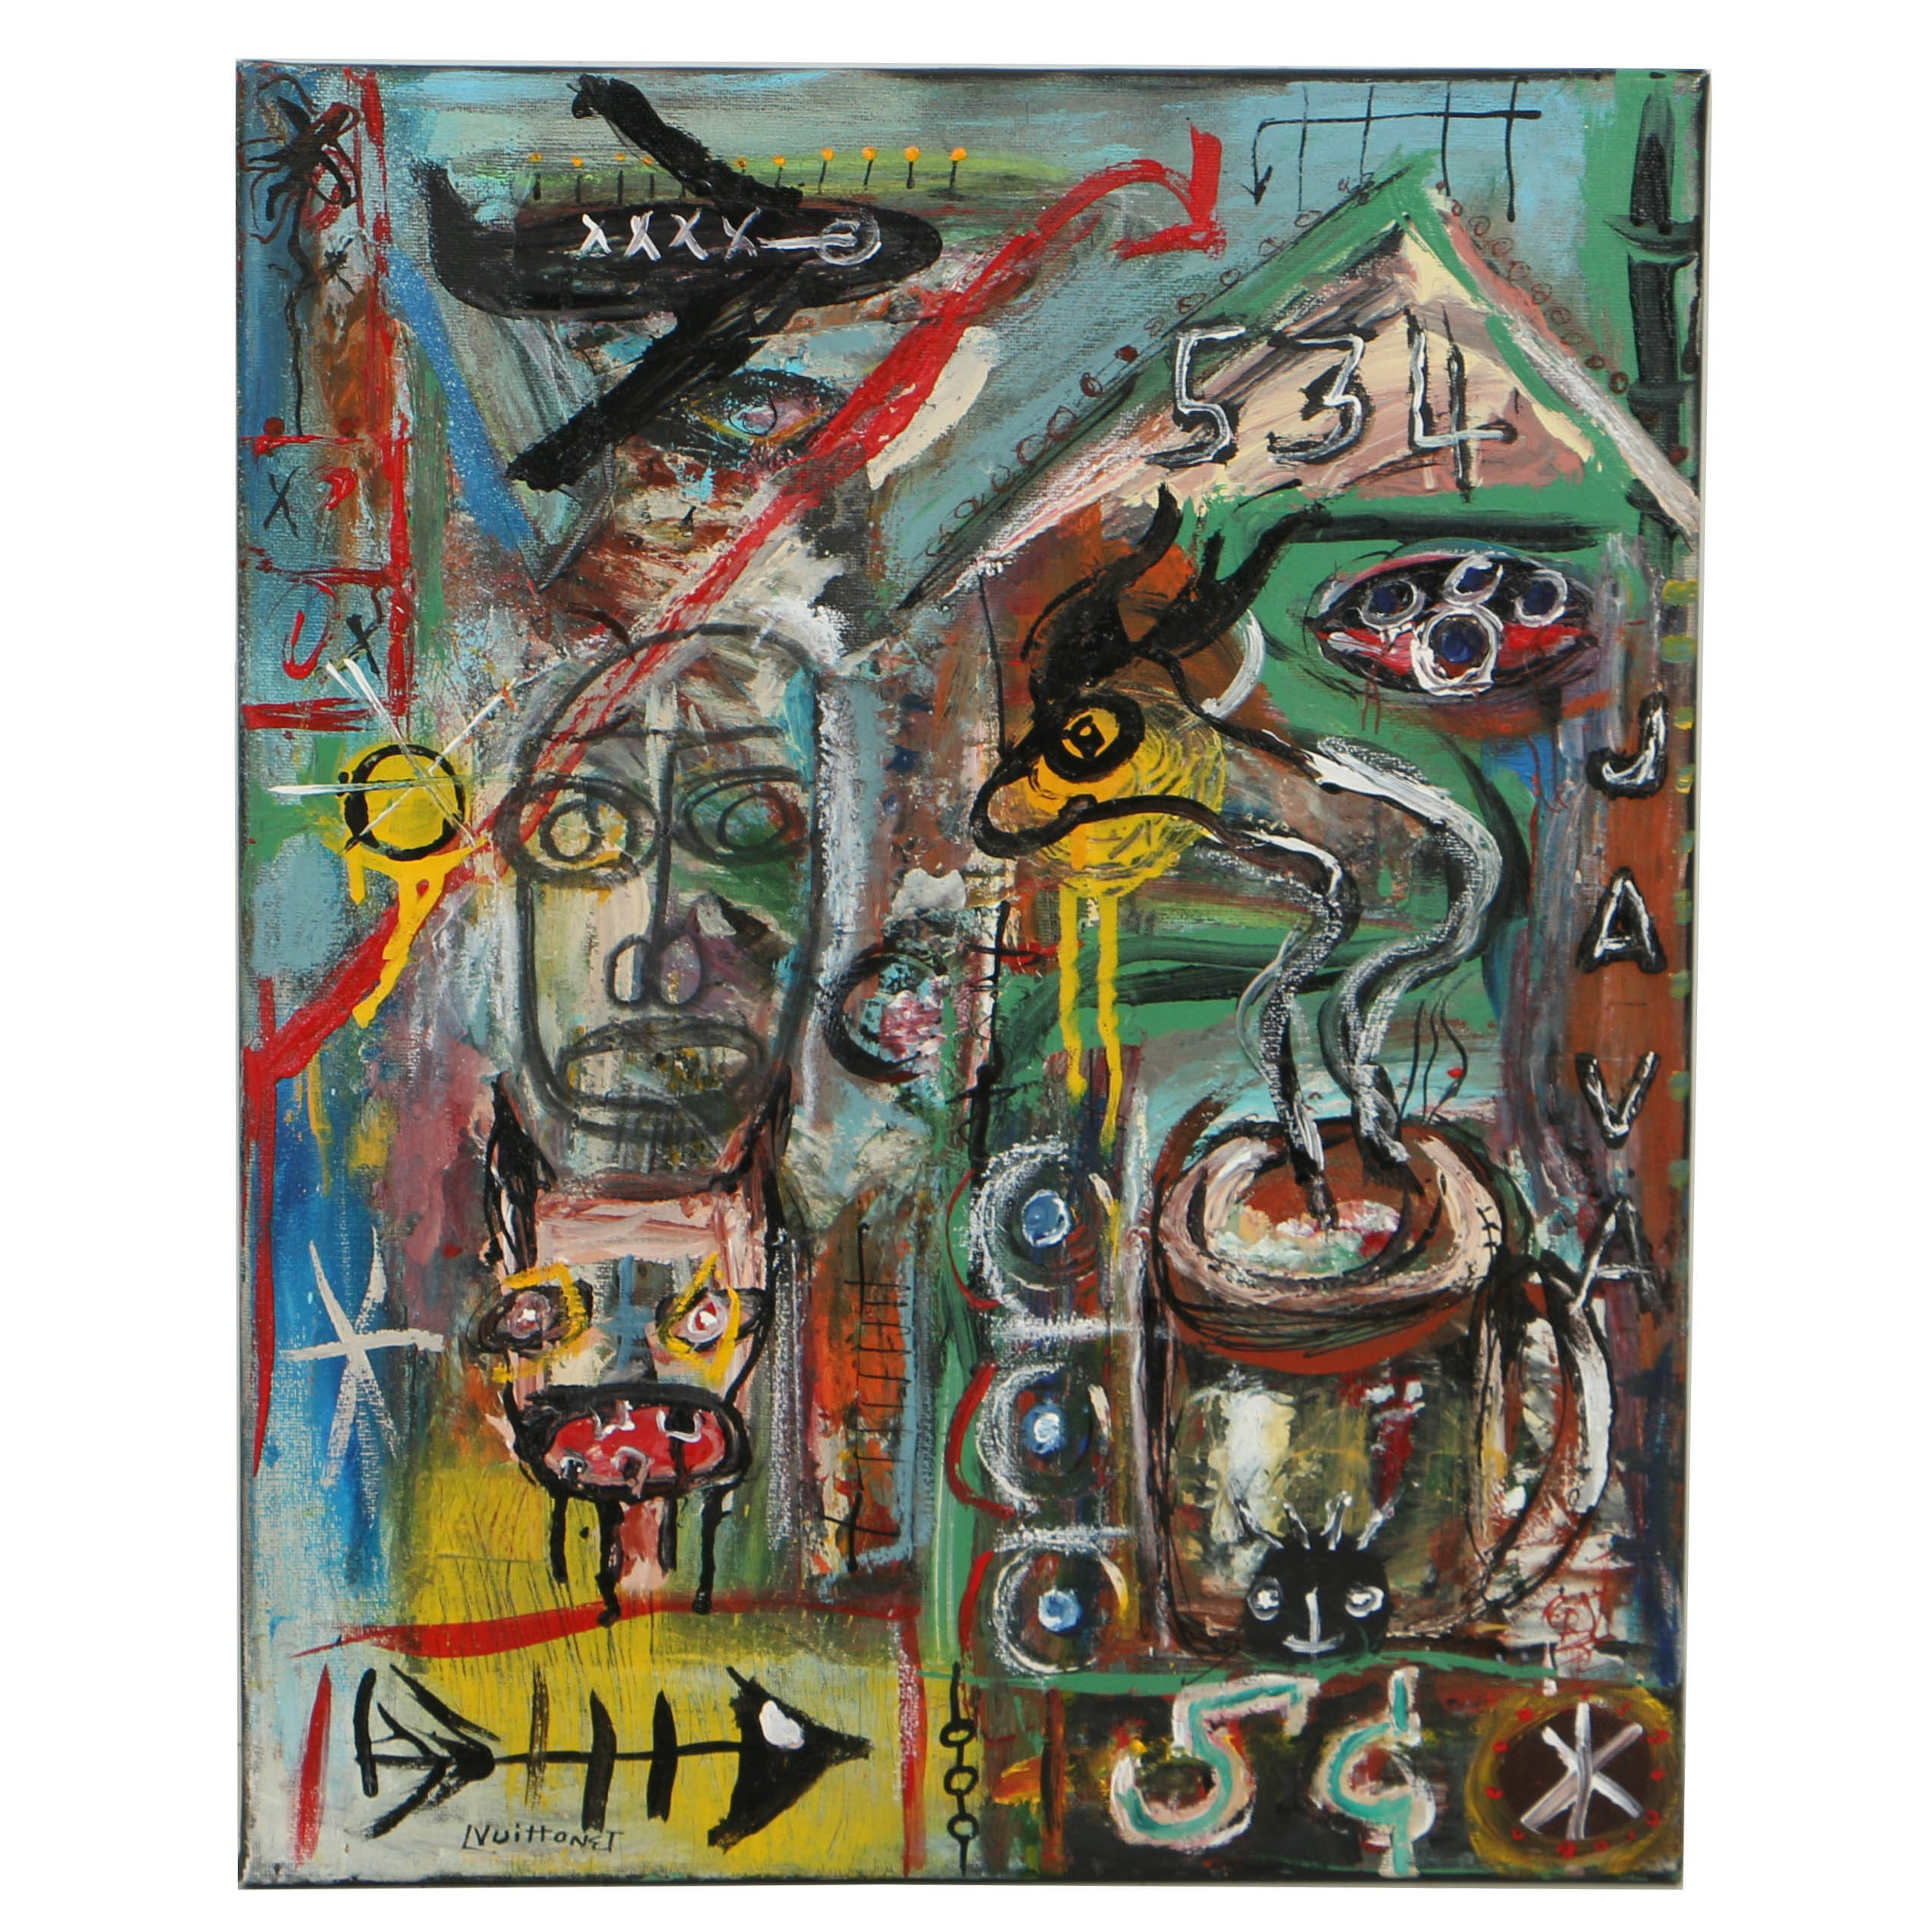 Louis Vuittonet Mixed Media Painting on Canvas of Abstract Composition